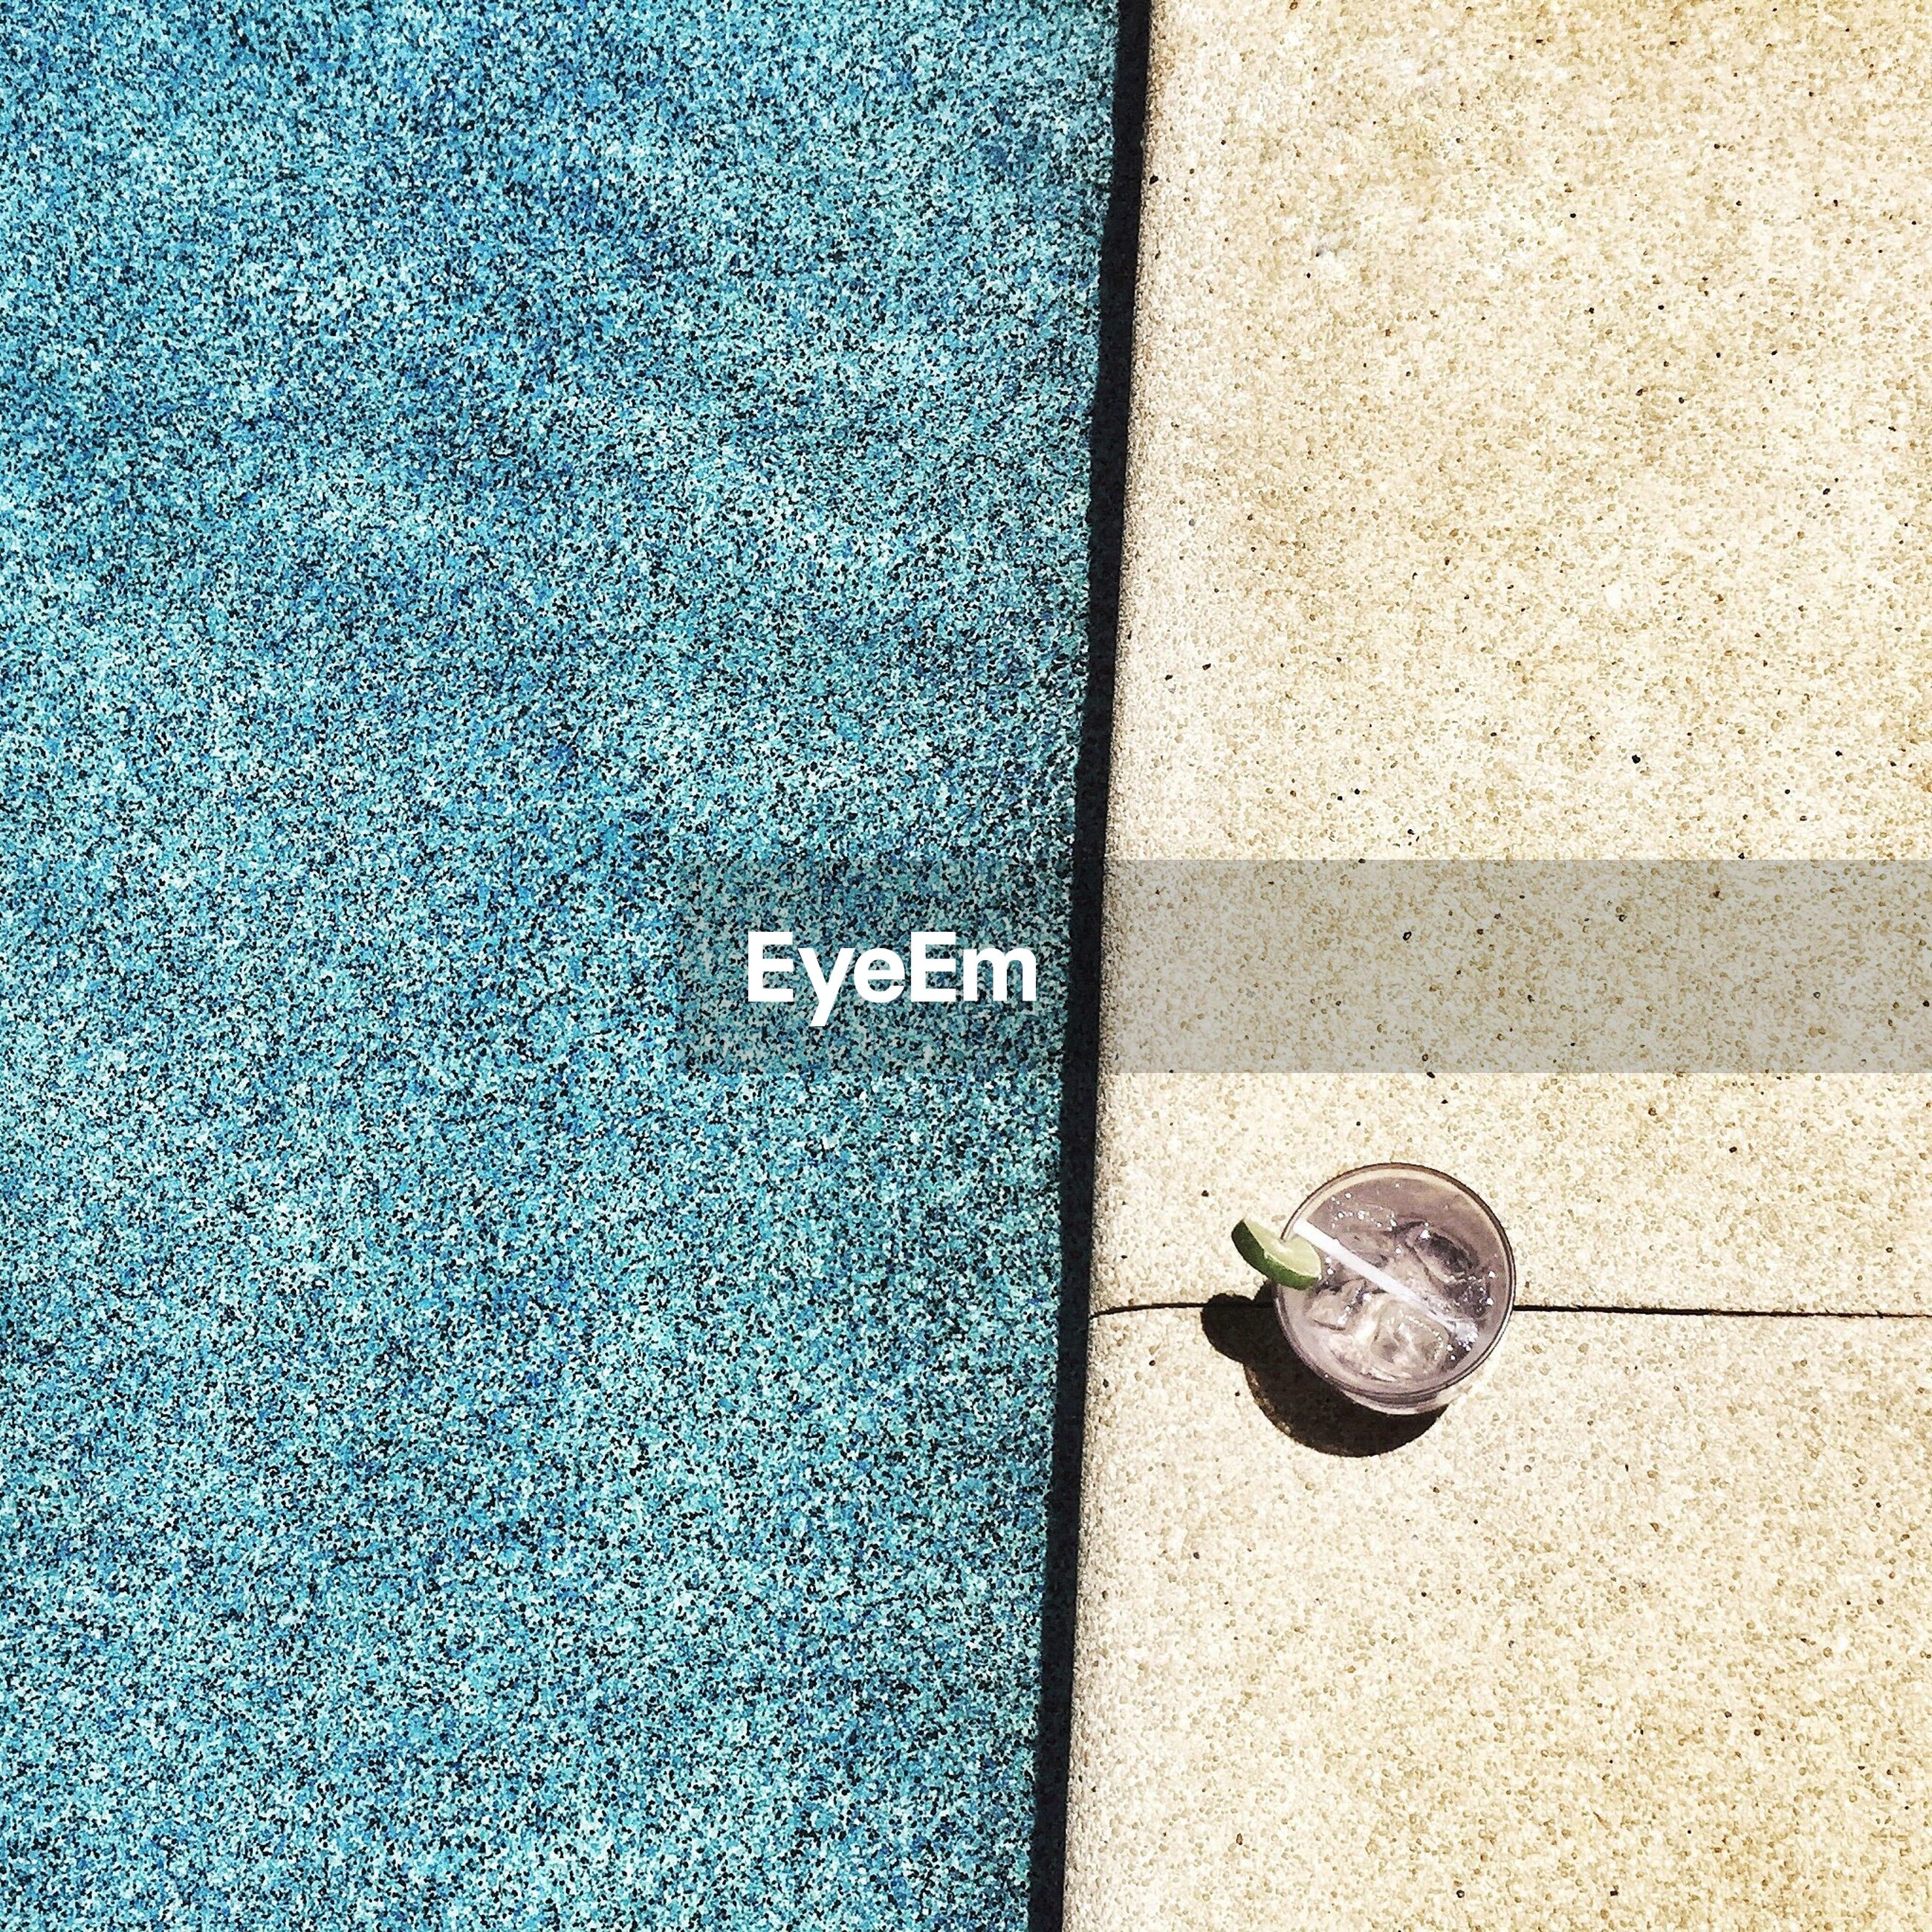 High angle view of drink at poolside during sunny day